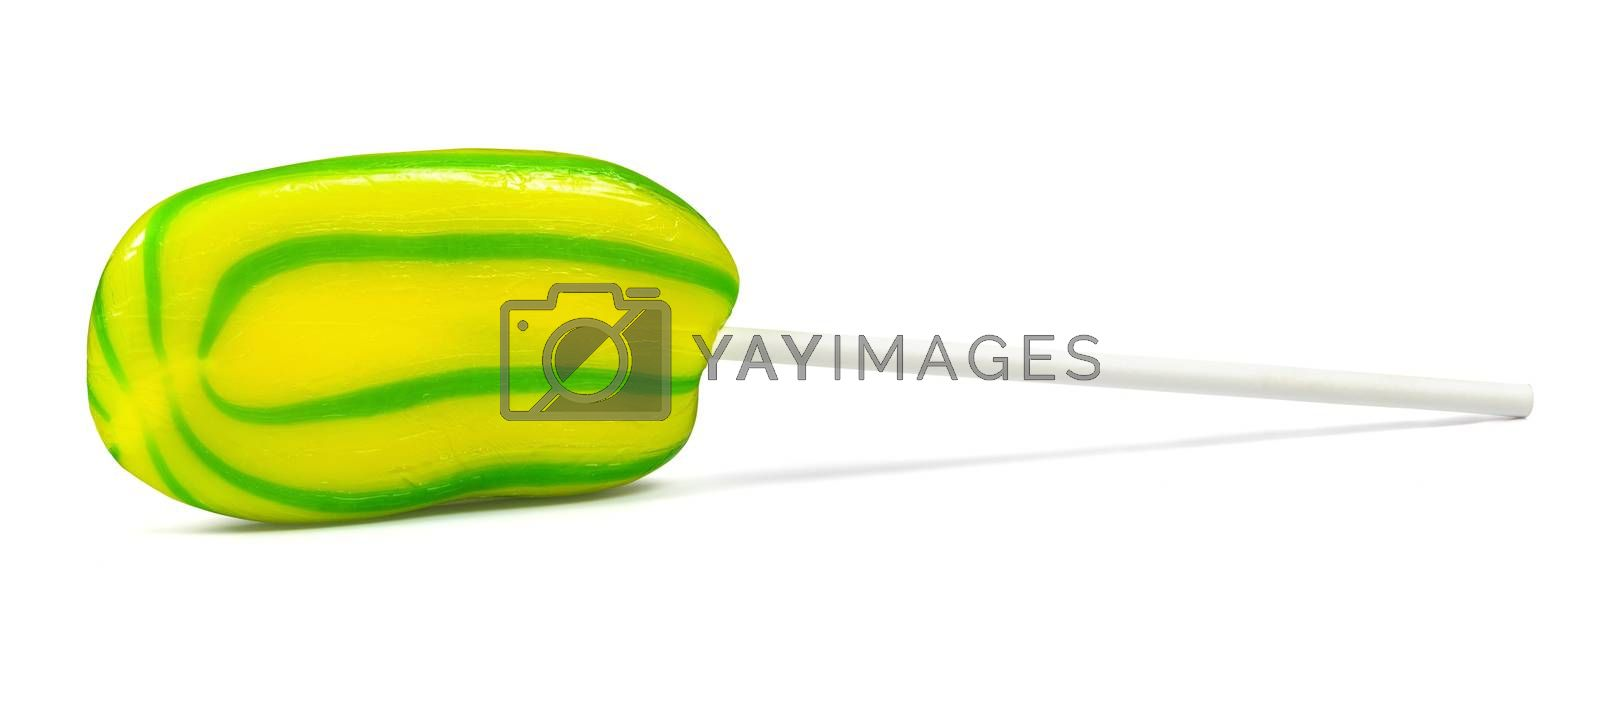 Royalty free image of Yellow-green lollipop on white background by mkos83